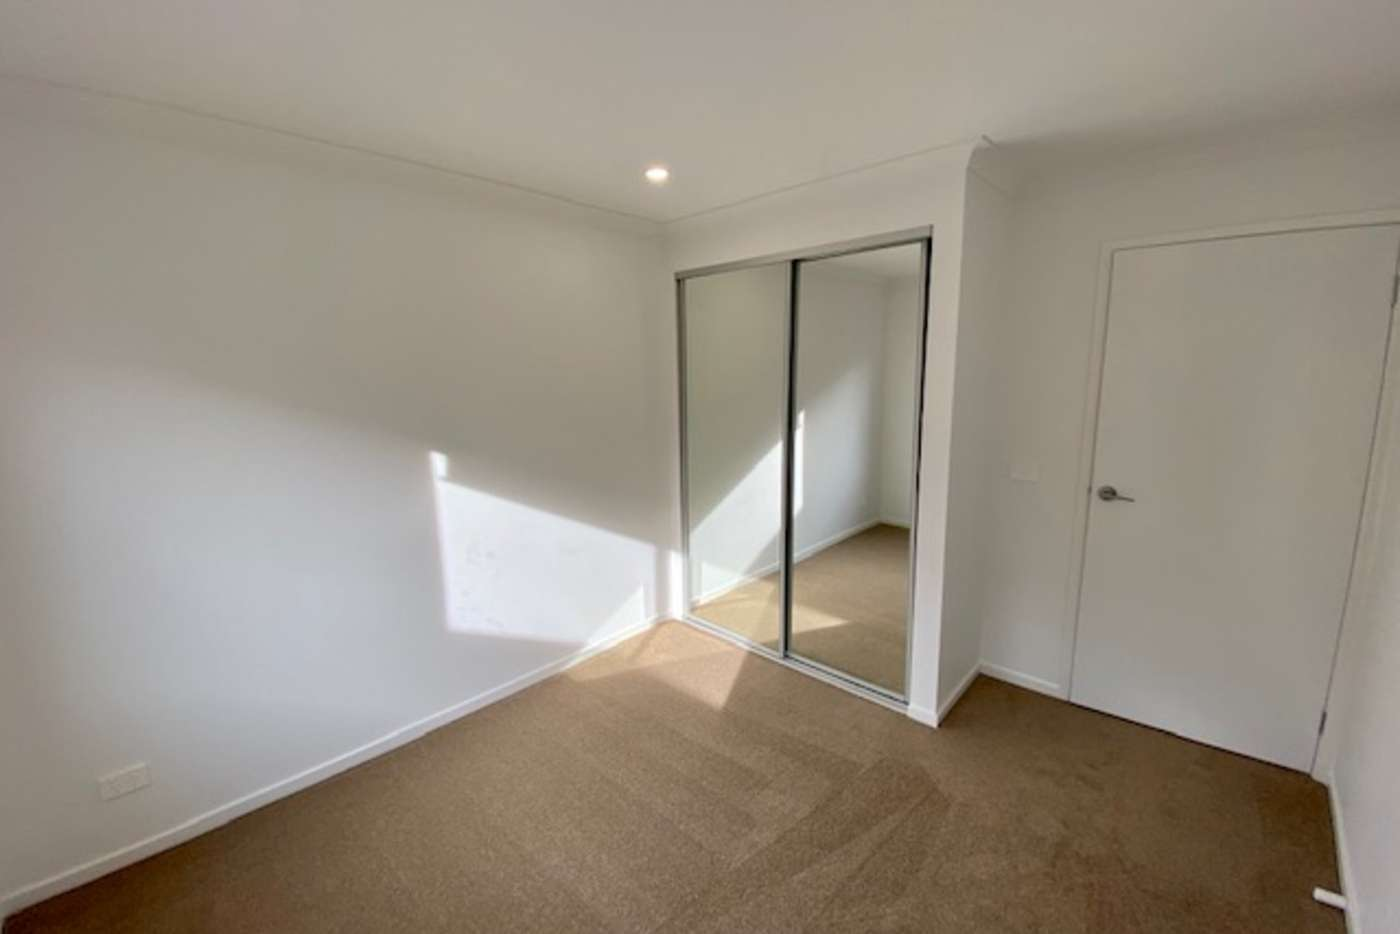 Seventh view of Homely house listing, 32 Cloudburst Avenue, Wyndham Vale VIC 3024